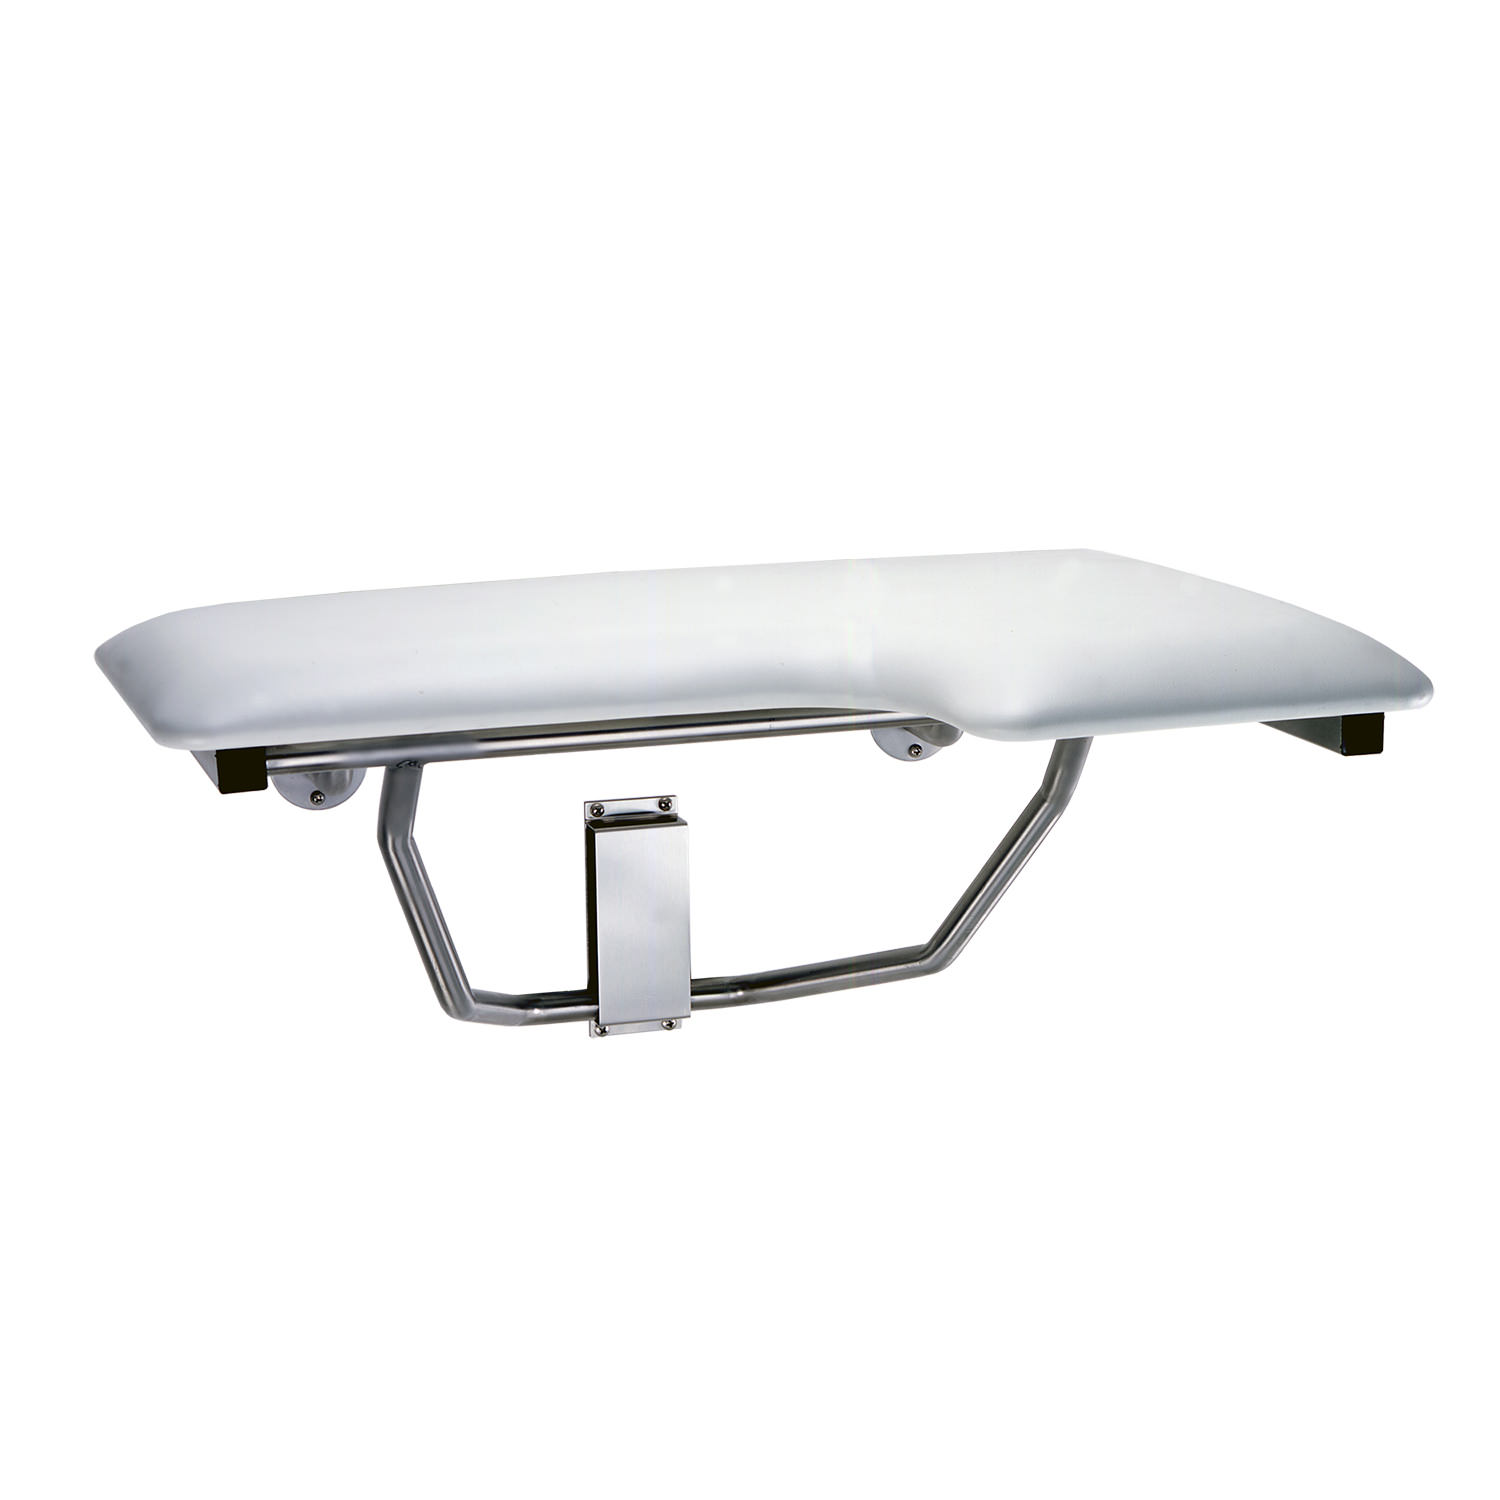 Folding Shower Seat With Padded Cushion For Right Hand Installation